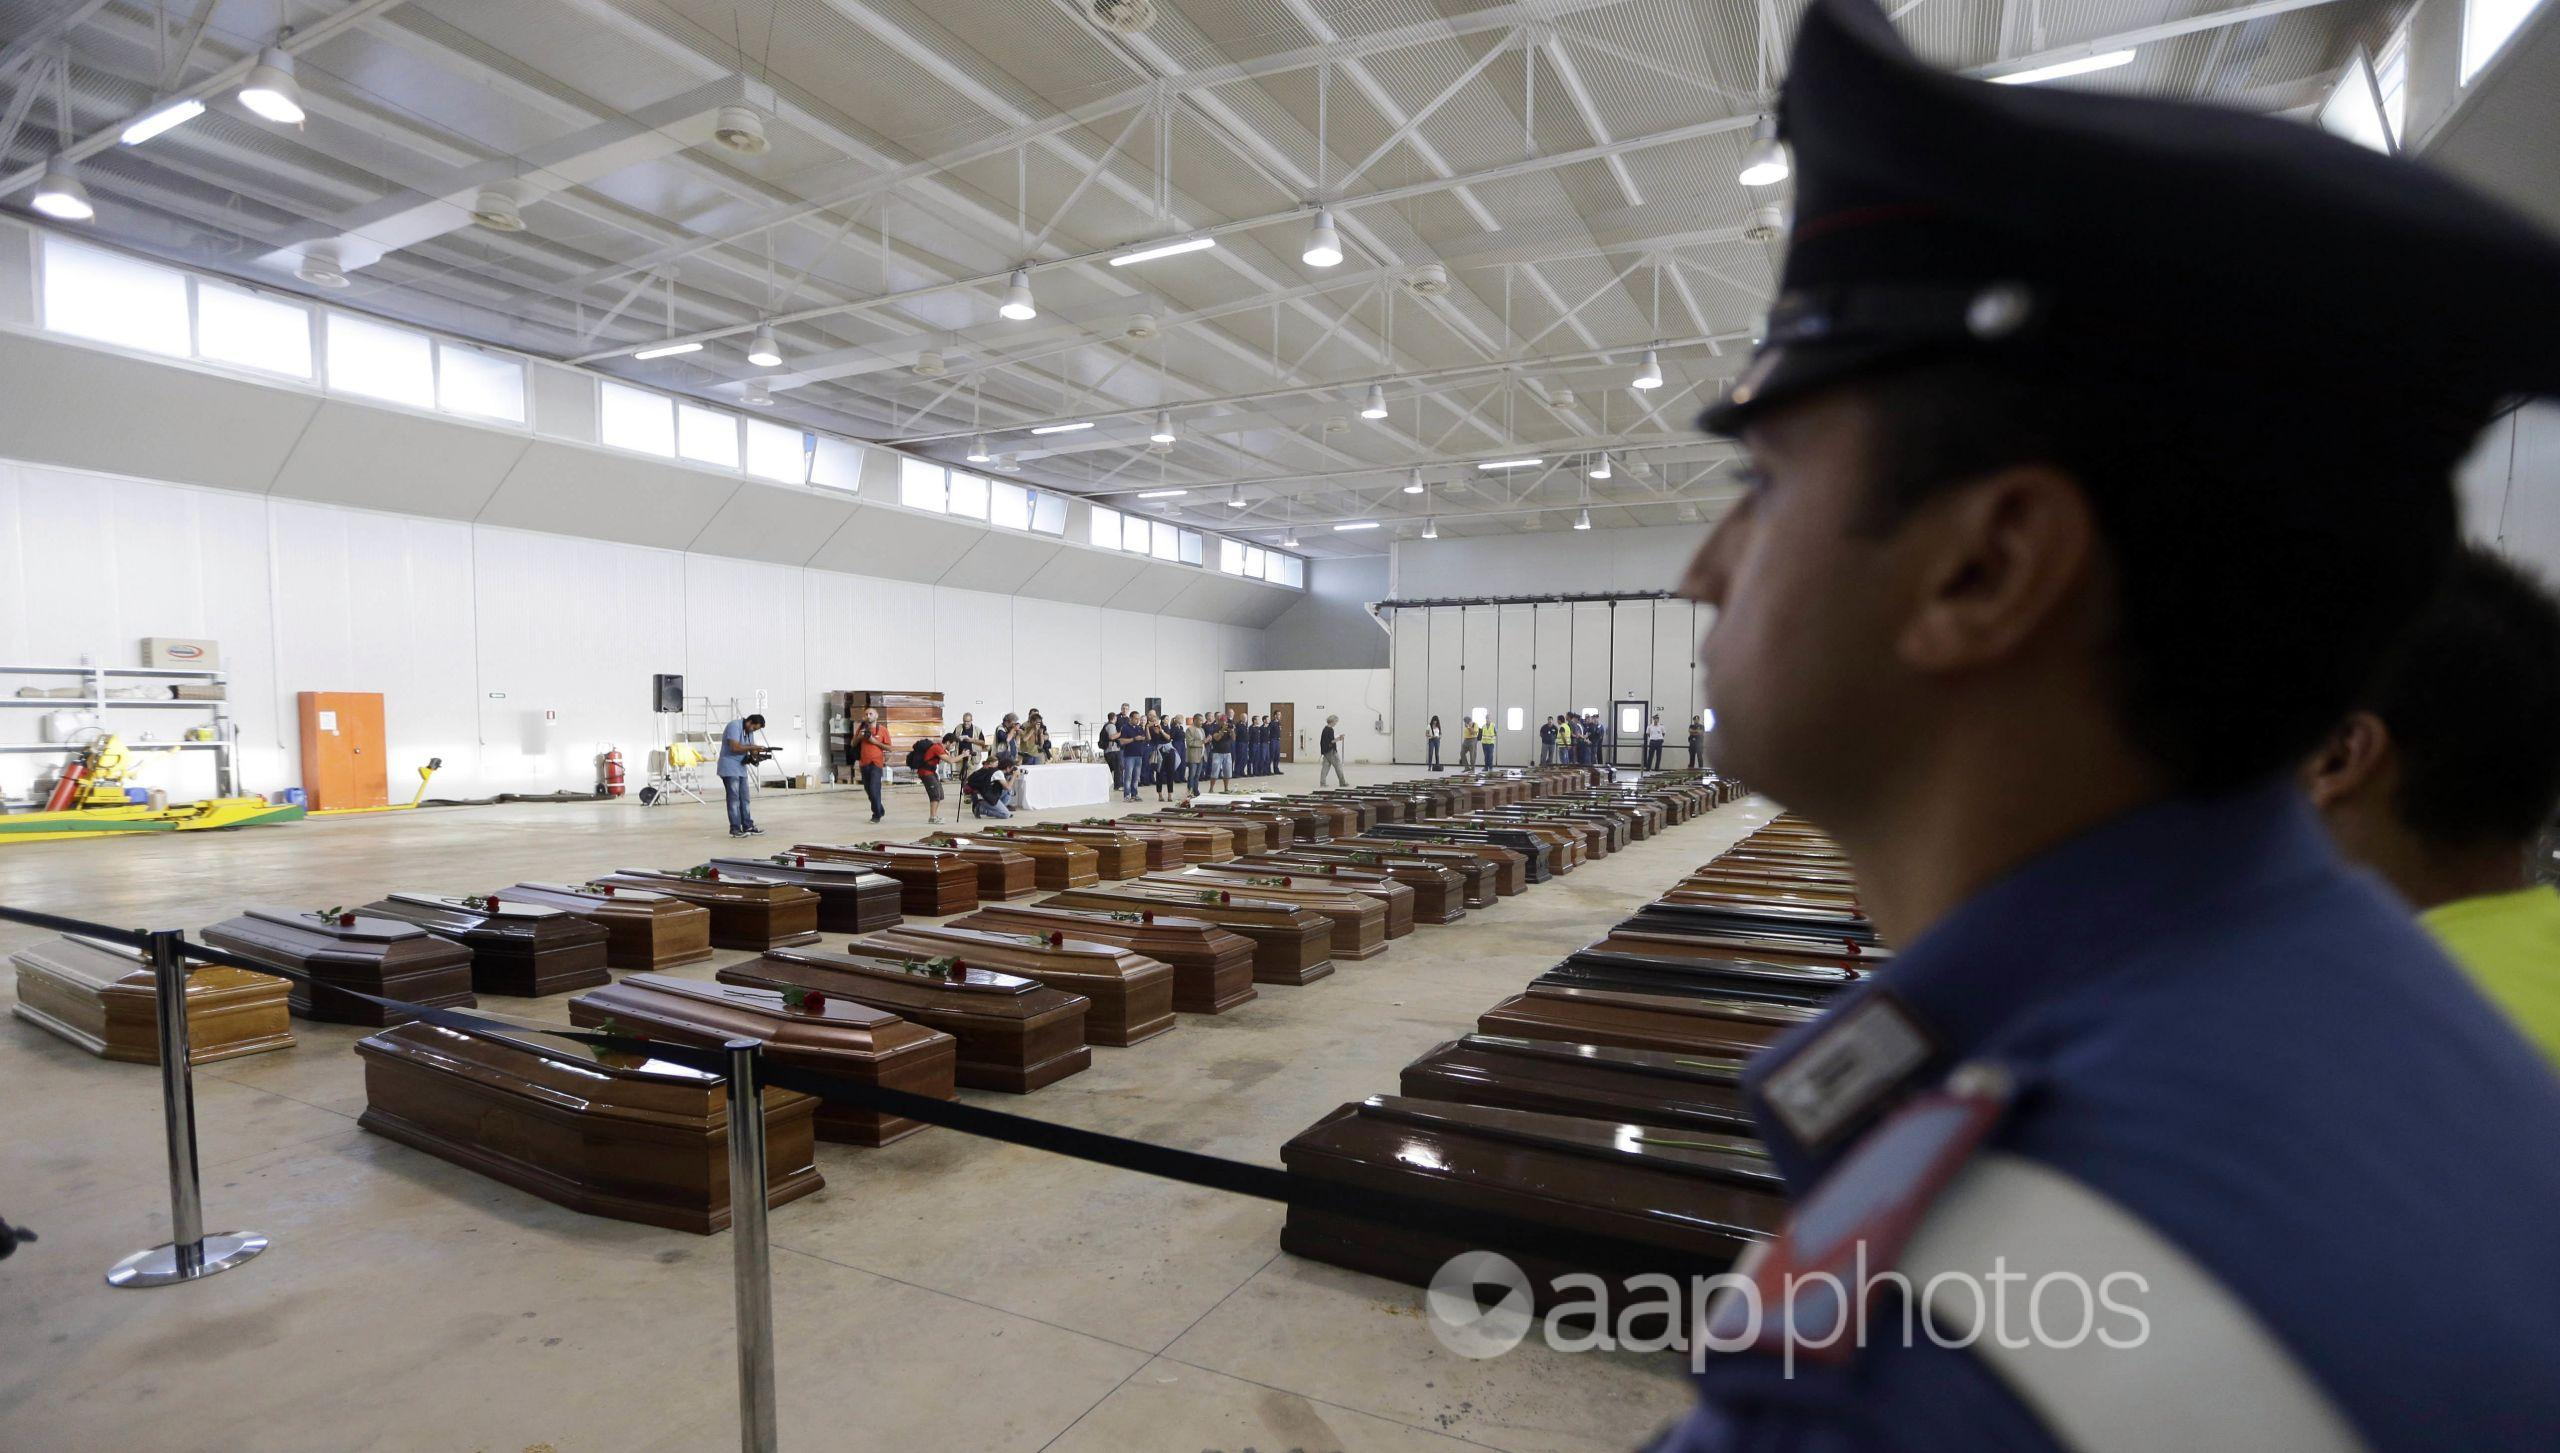 The coffins of migrants inside the hangar of Lampedusa's airport